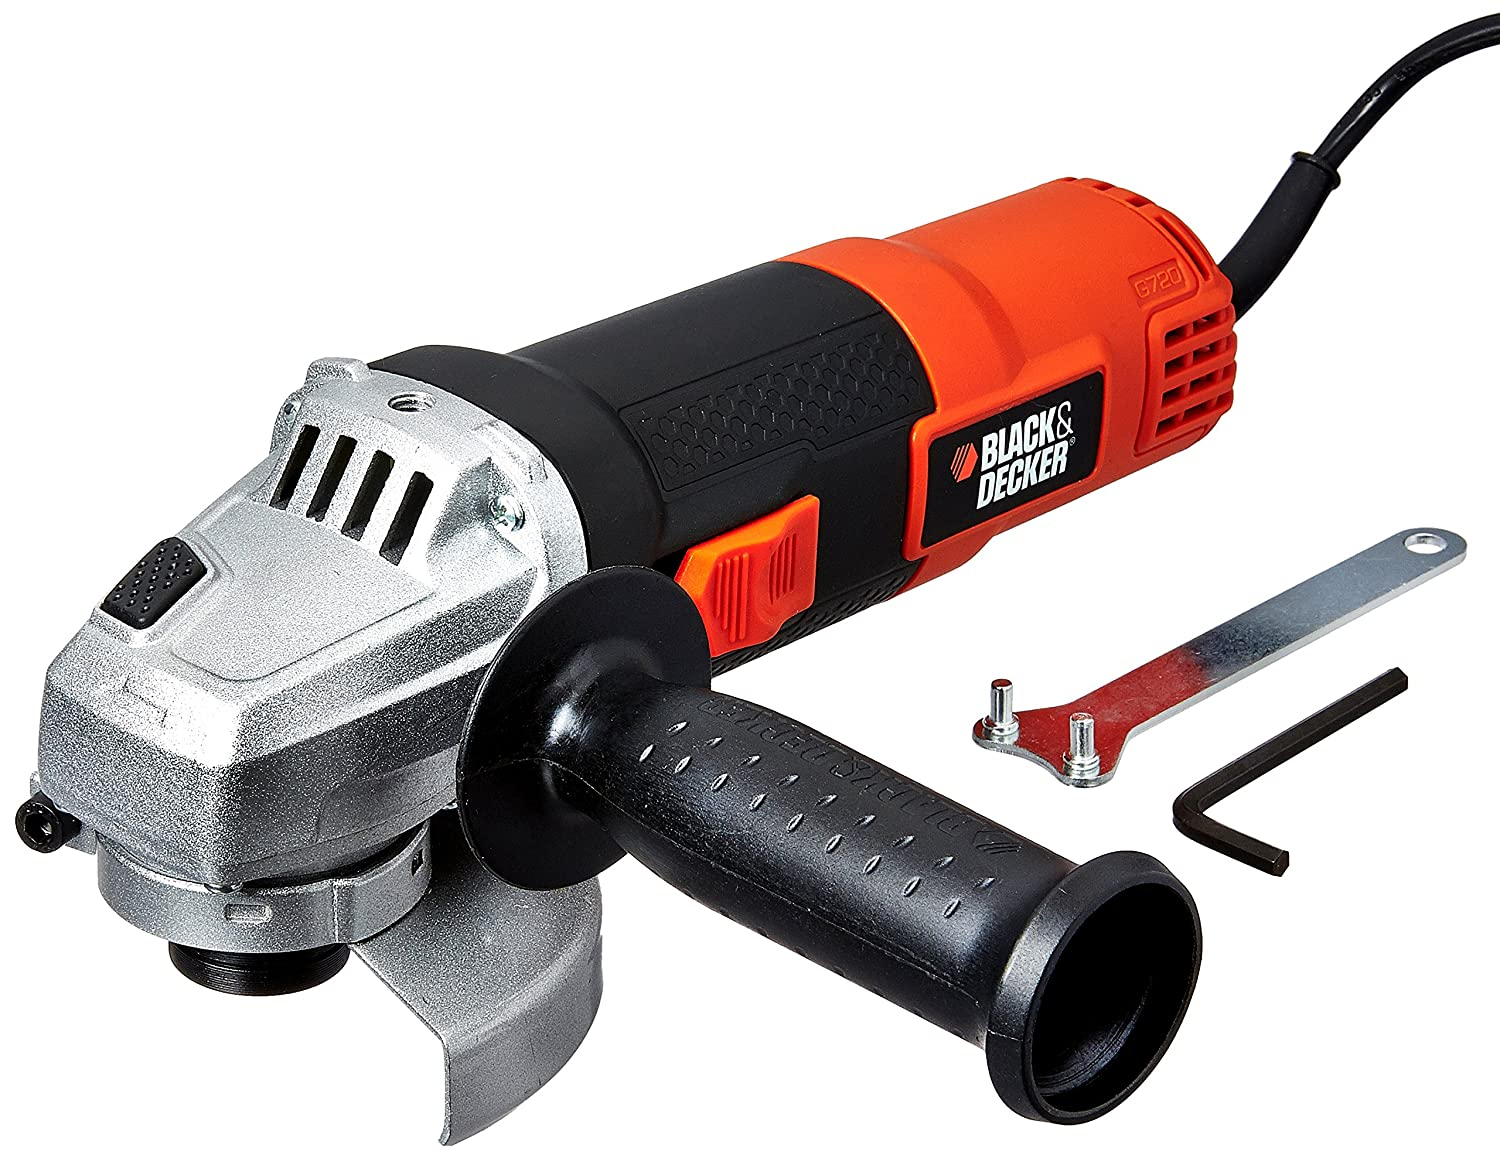 BLACK + DECKER G720 820W 4''/100mm Small Angle Grinder (Red & Black)